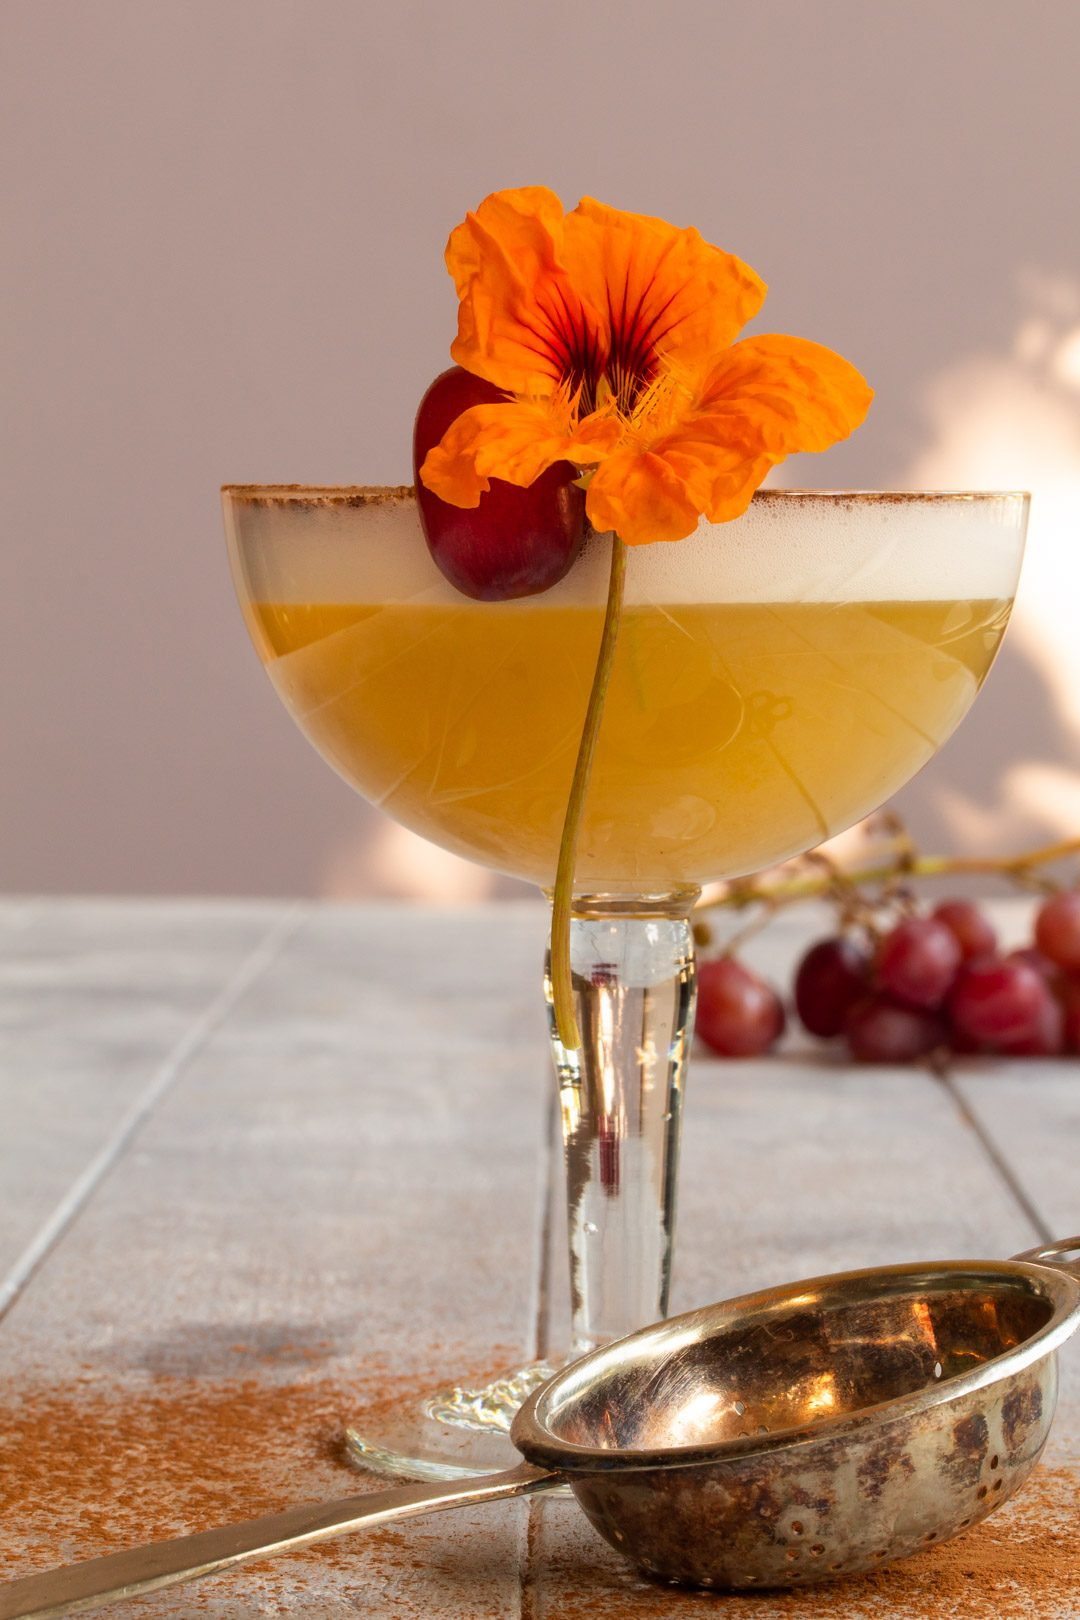 Autumn grape silver sour: with tea strainer and grapes in background